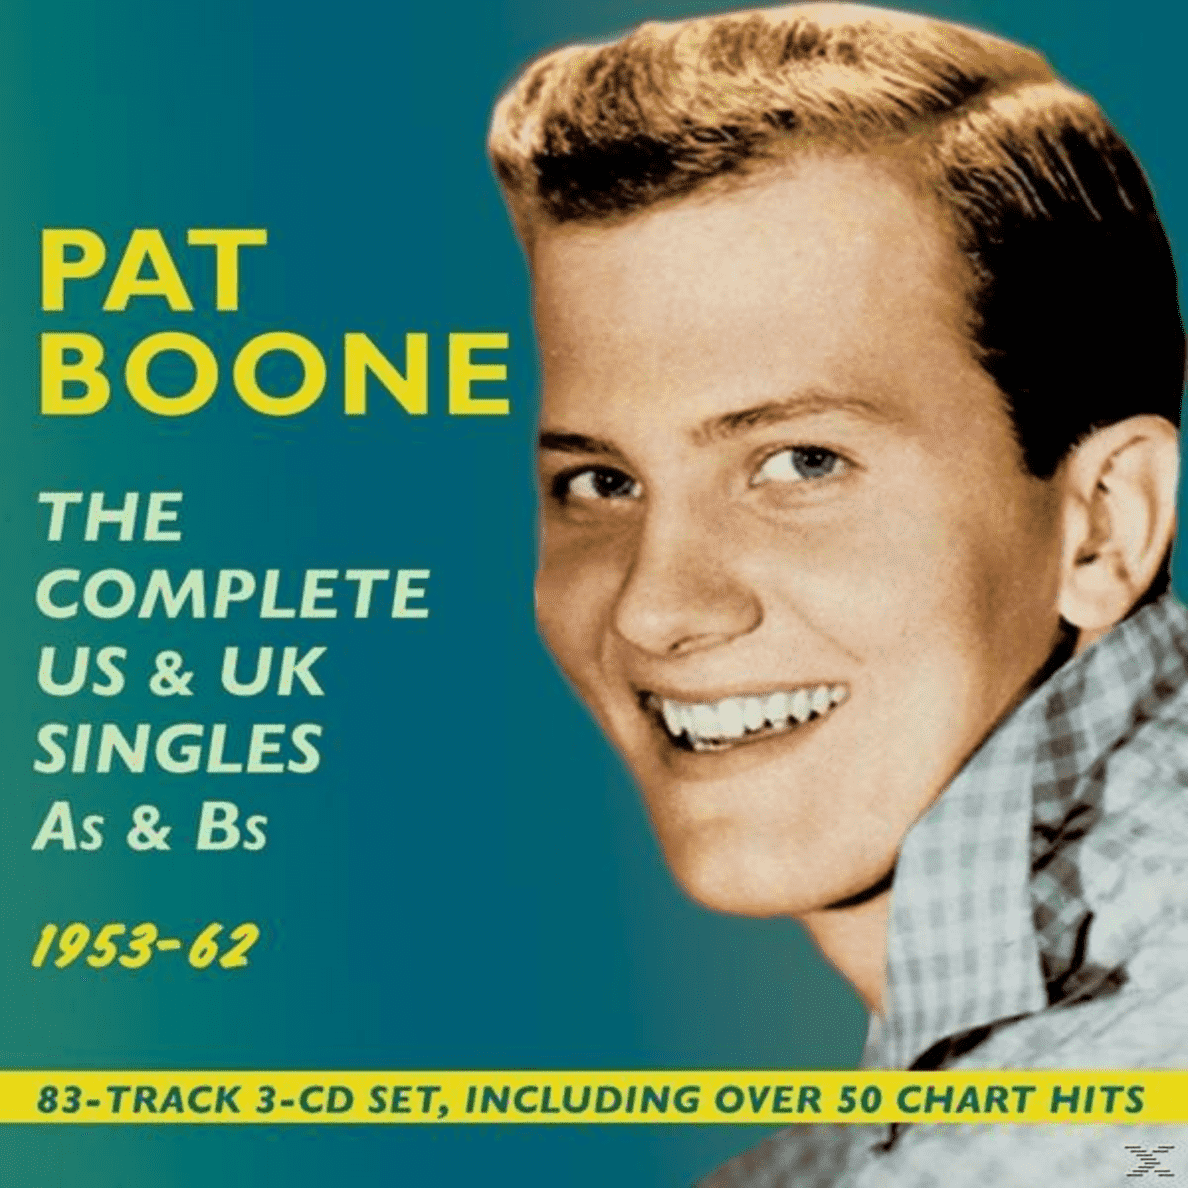 The Complete Us & Uk Singles As & Bs 1953-62 Pat Boone auf CD